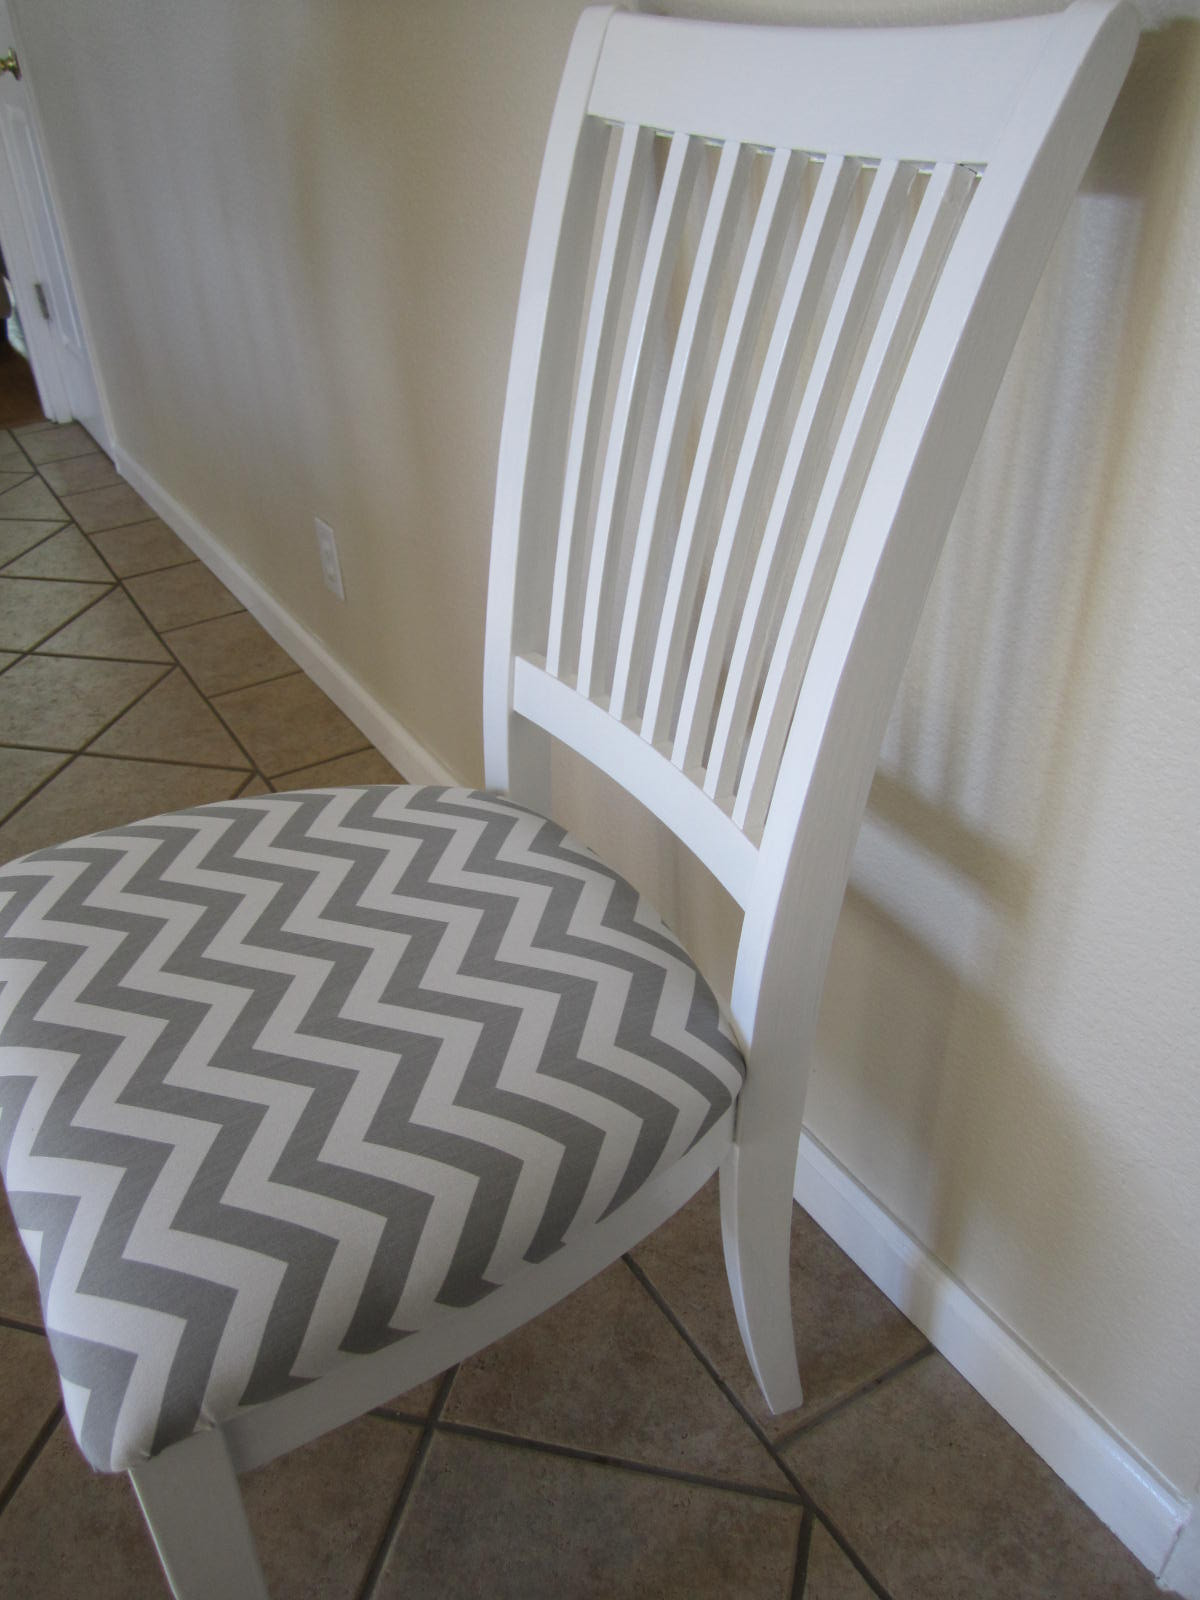 Best ideas about DIY Fabric Paint . Save or Pin DIY Chair Facelift – New Fabric & Paint Now.